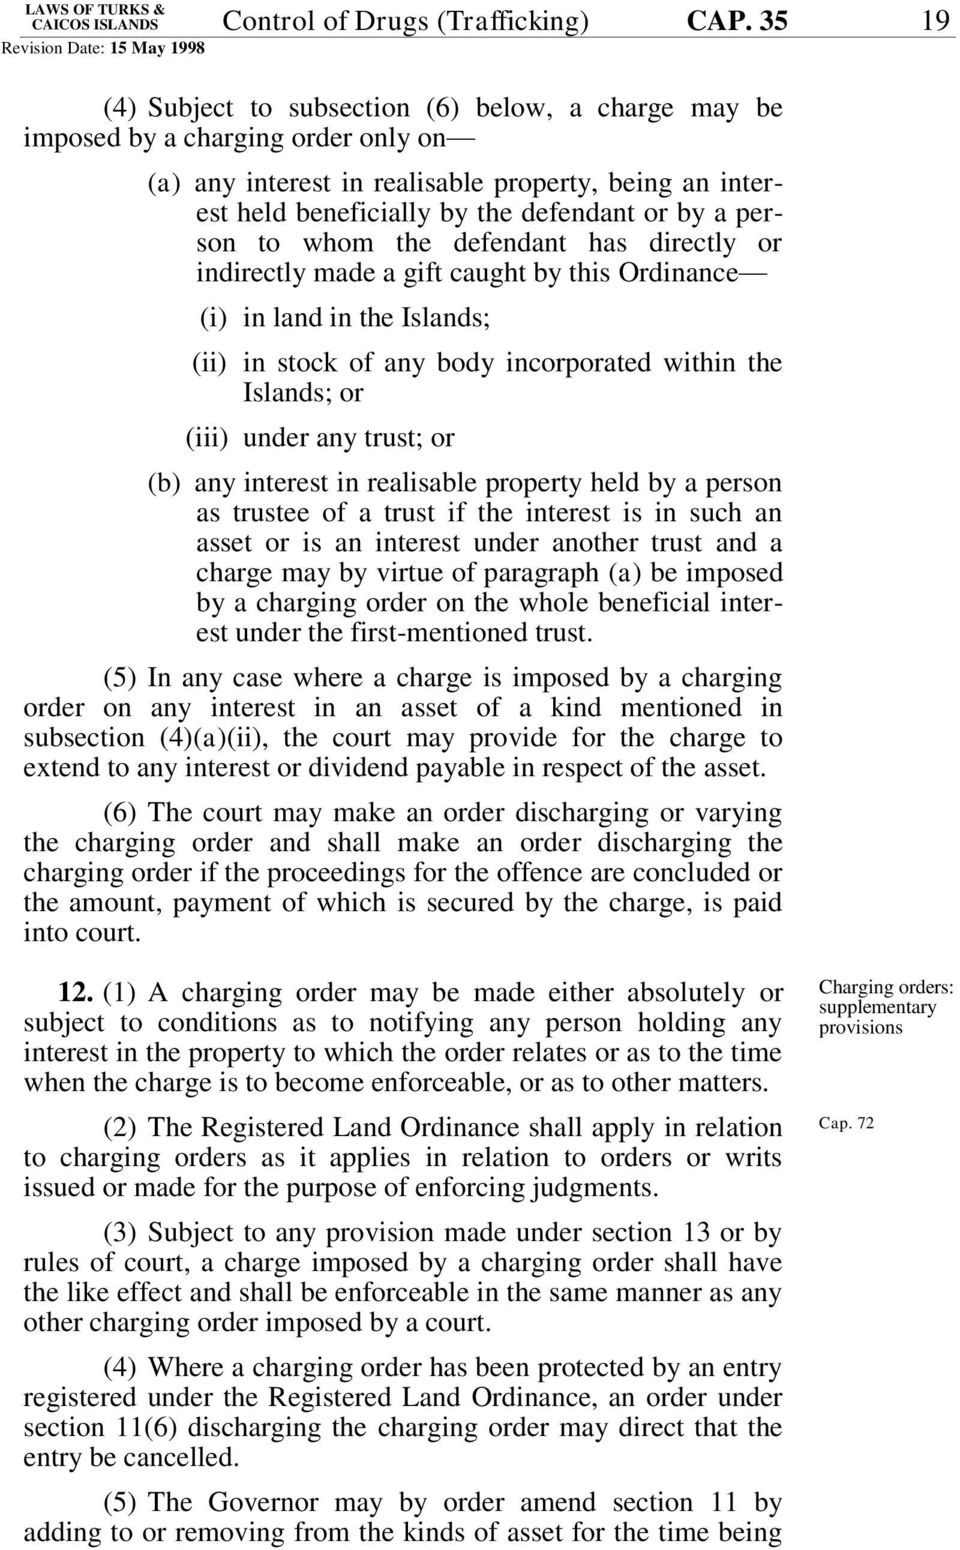 person to whom the defendant has directly or indirectly made a gift caught by this Ordinance (i) in land in the Islands; (ii) in stock of any body incorporated within the Islands; or (iii) under any